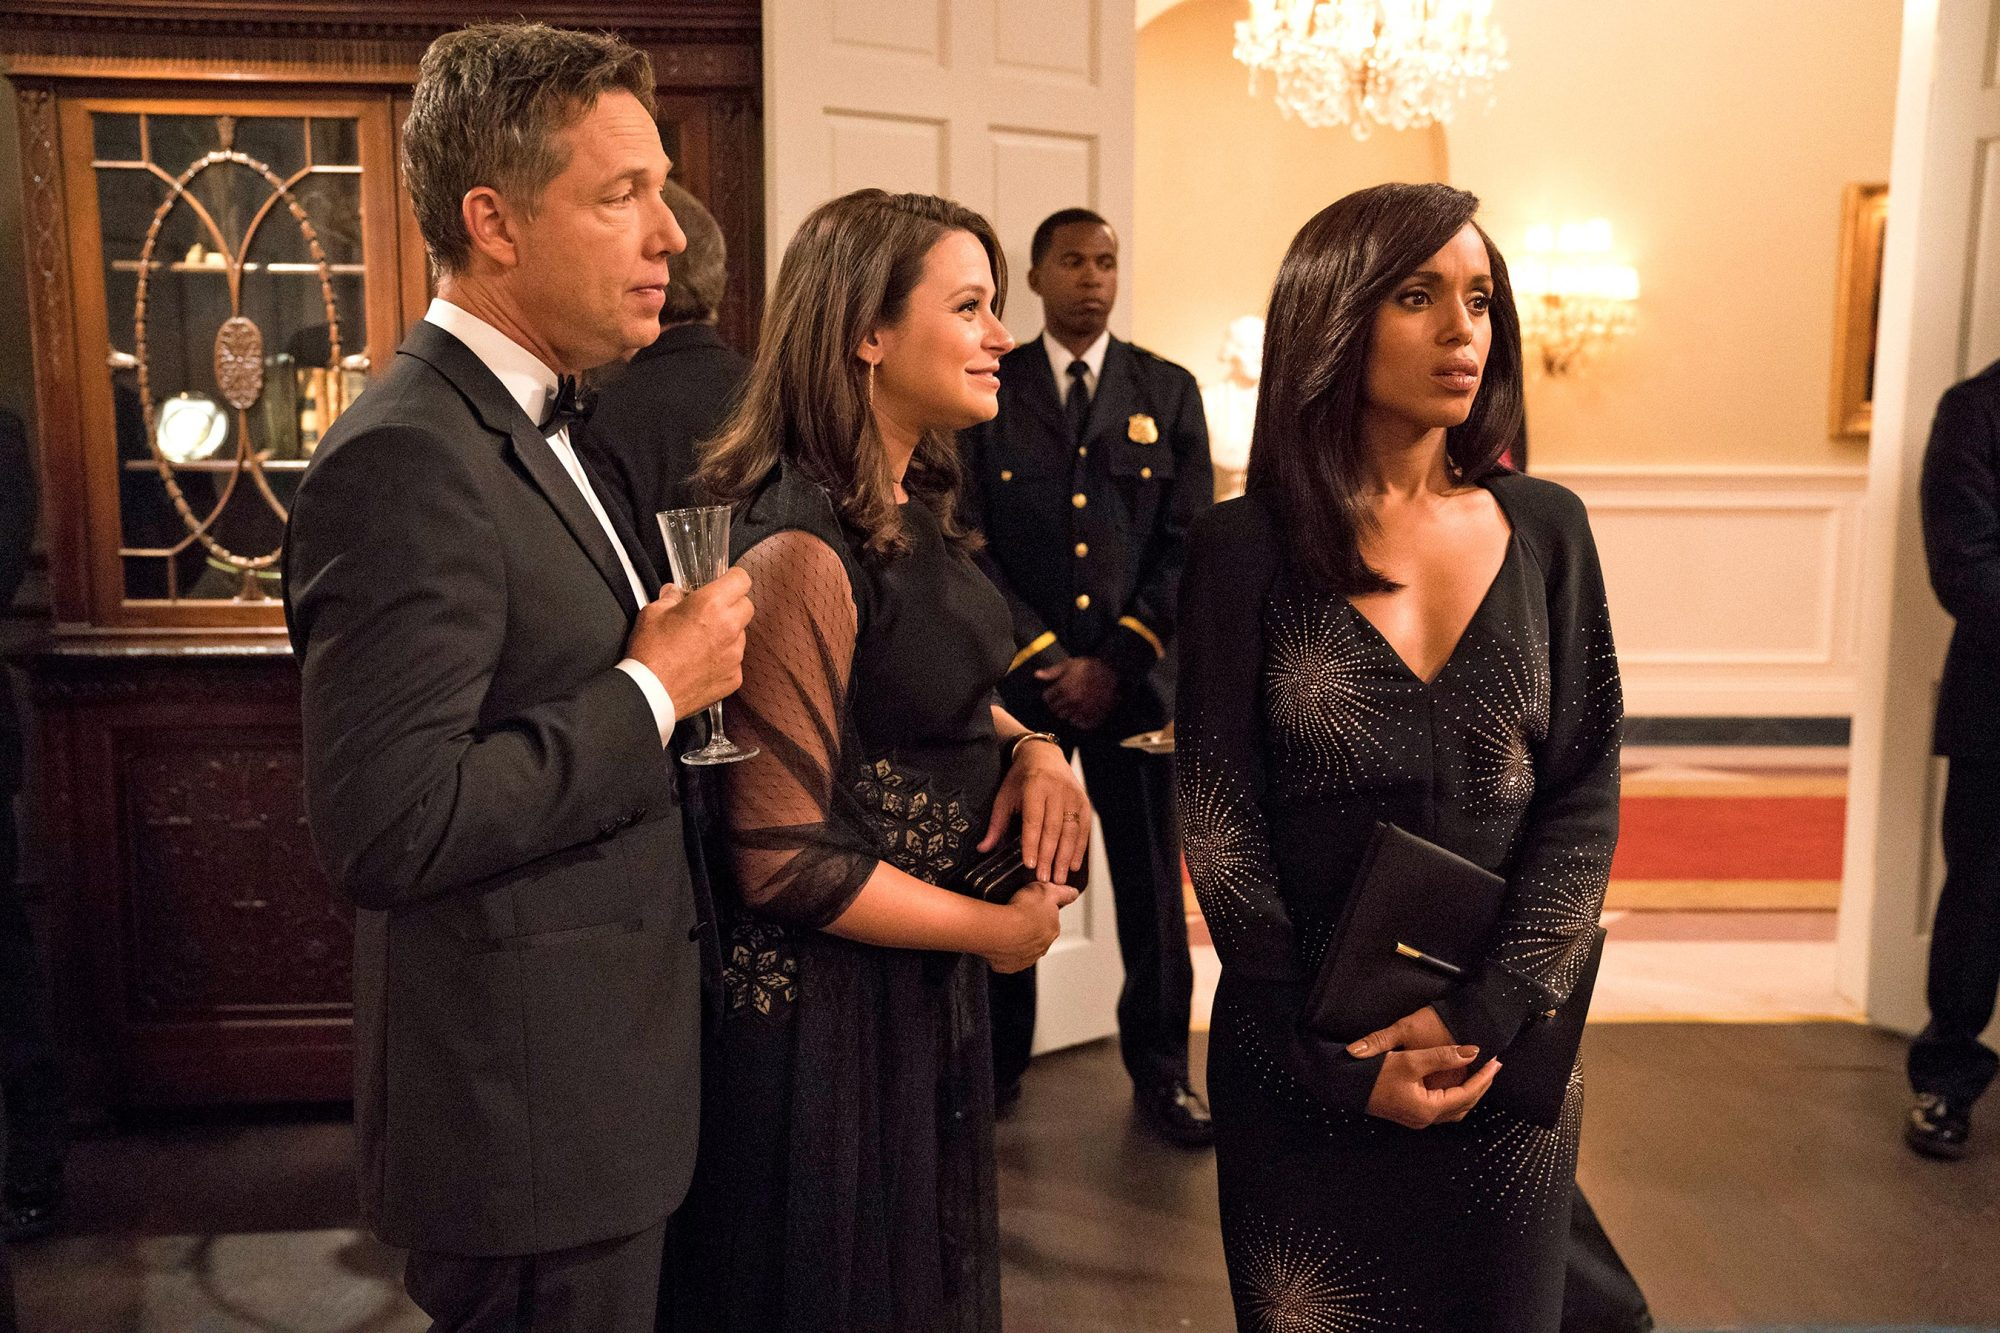 GEORGE NEWBERN, KATIE LOWES, KERRY WASHINGTON